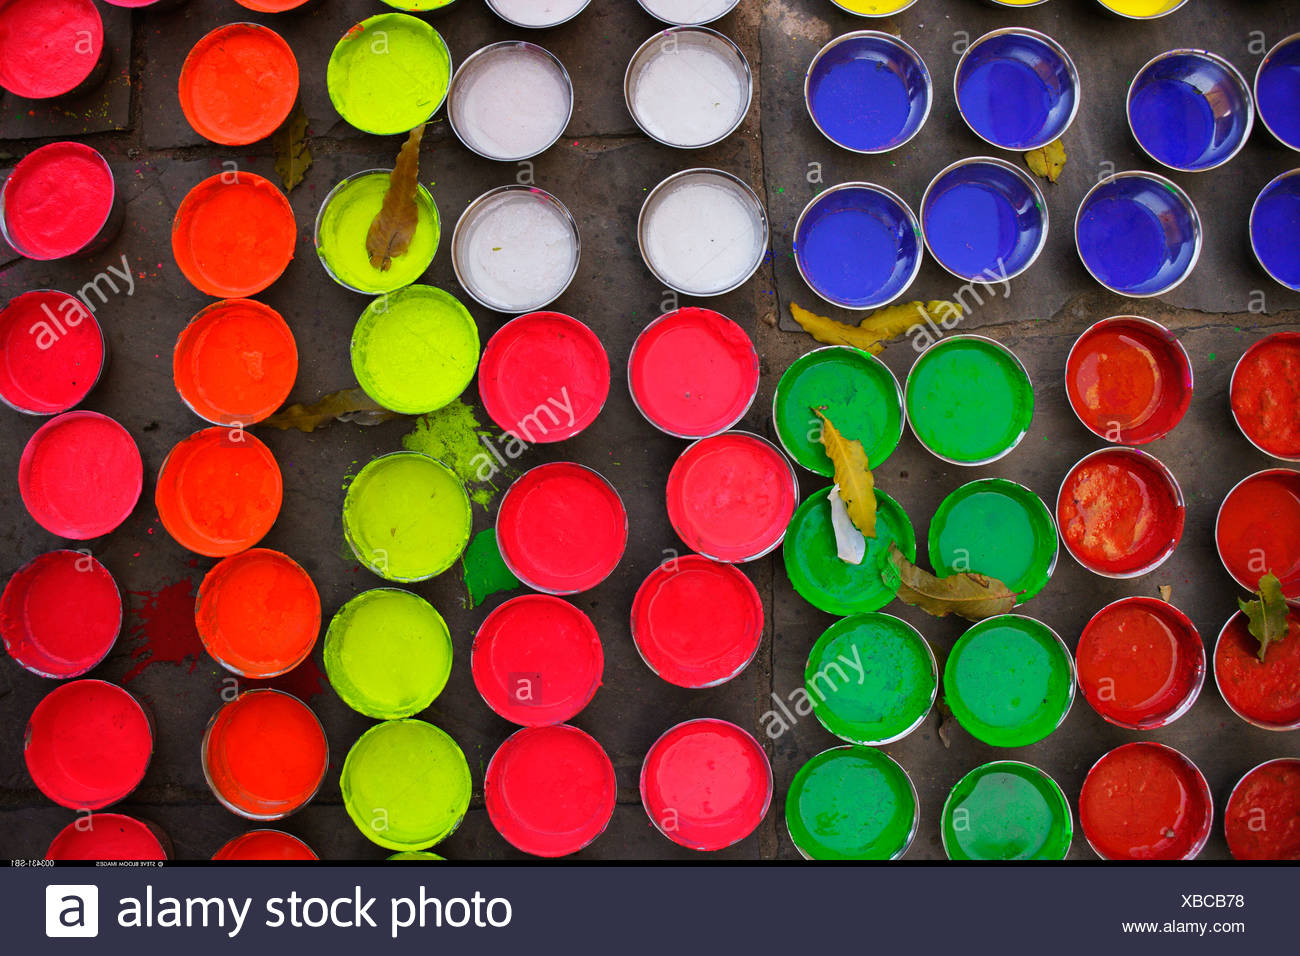 Pots of paint used for decoration of elephants for the Elephant Festival Jaipur India - Stock Image